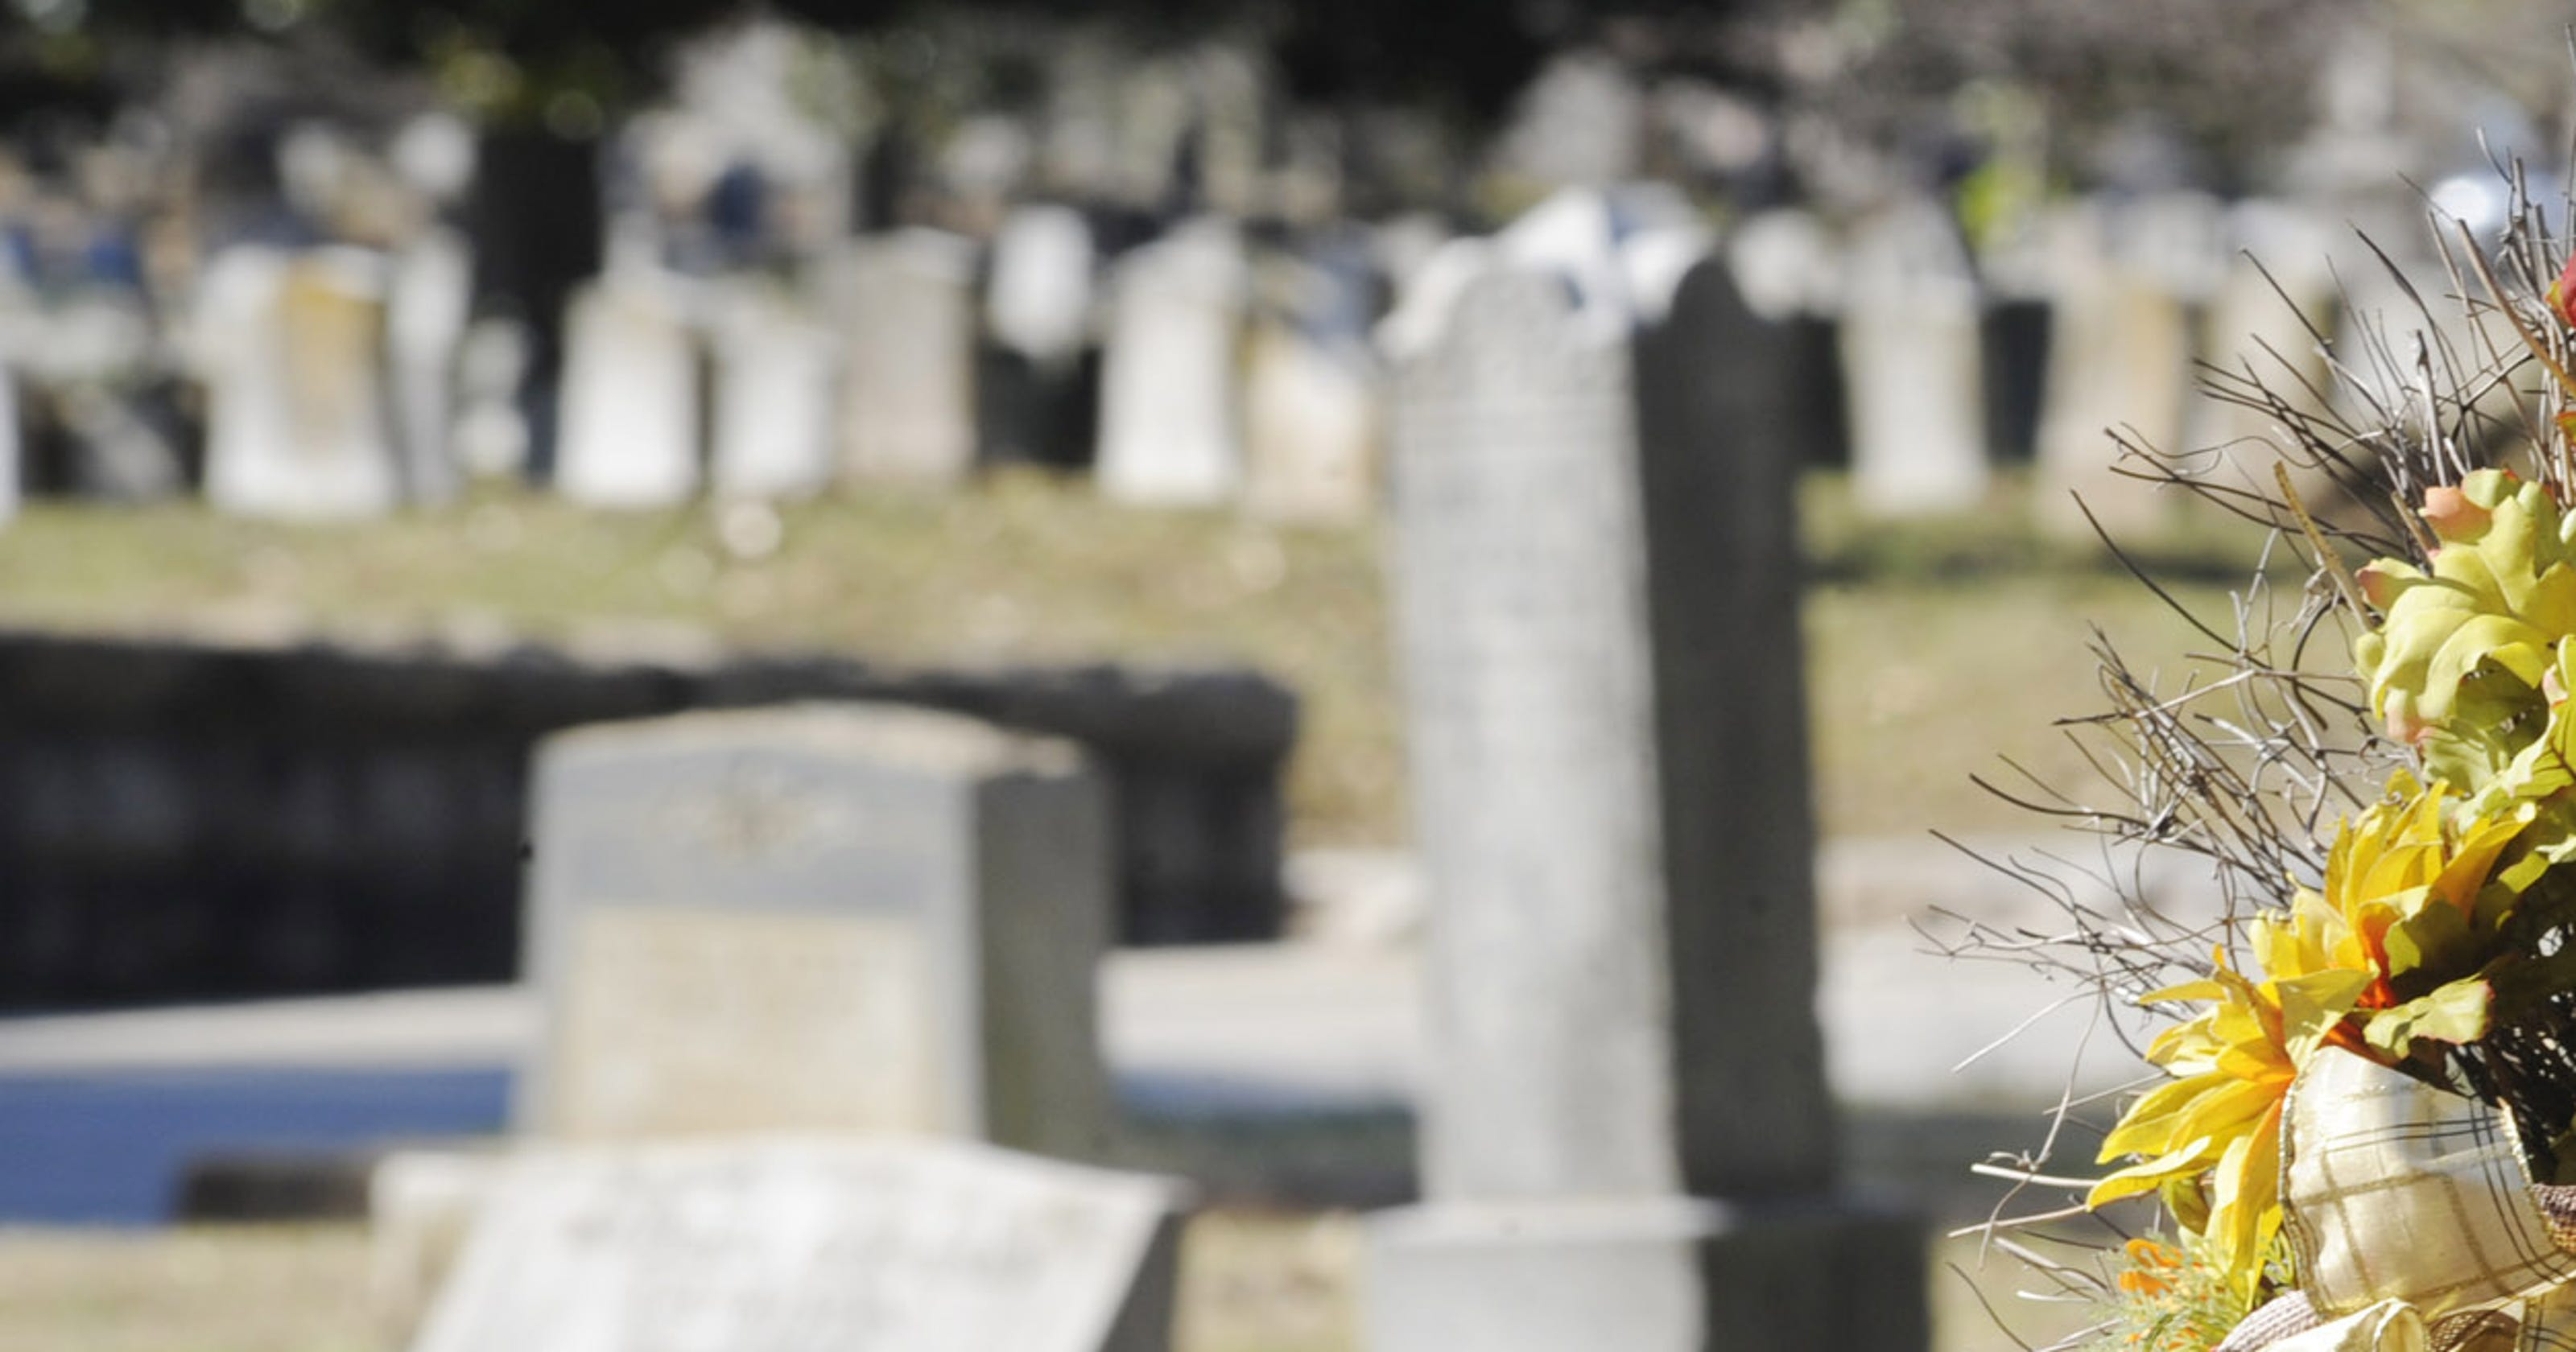 Meridian cemeteries under new ownership following state lawsuit